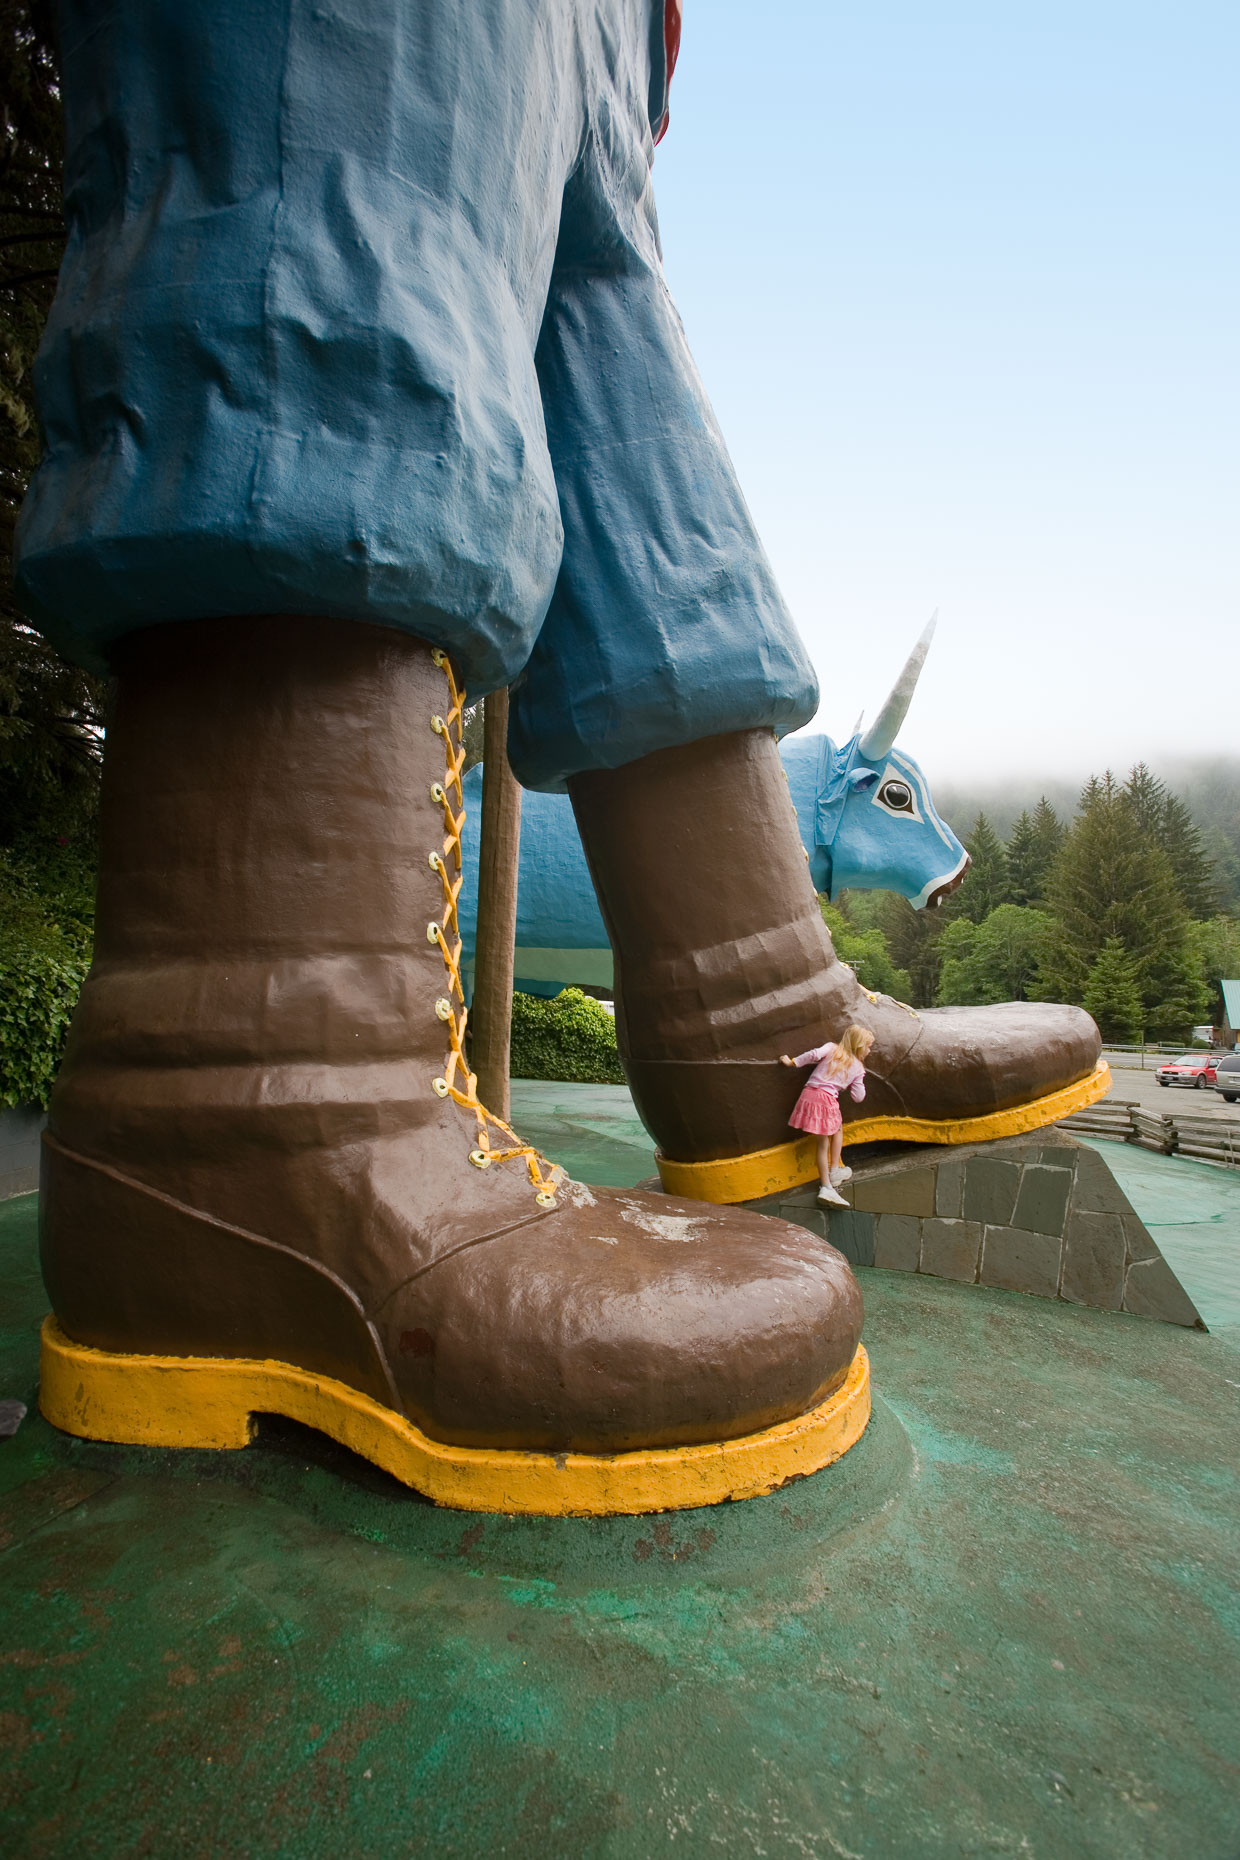 Girl climbs on large boot which is part of a statue of Paul Bunyan at roadside attraction in Klamath, California. Trees of Mystery by David Zaitz